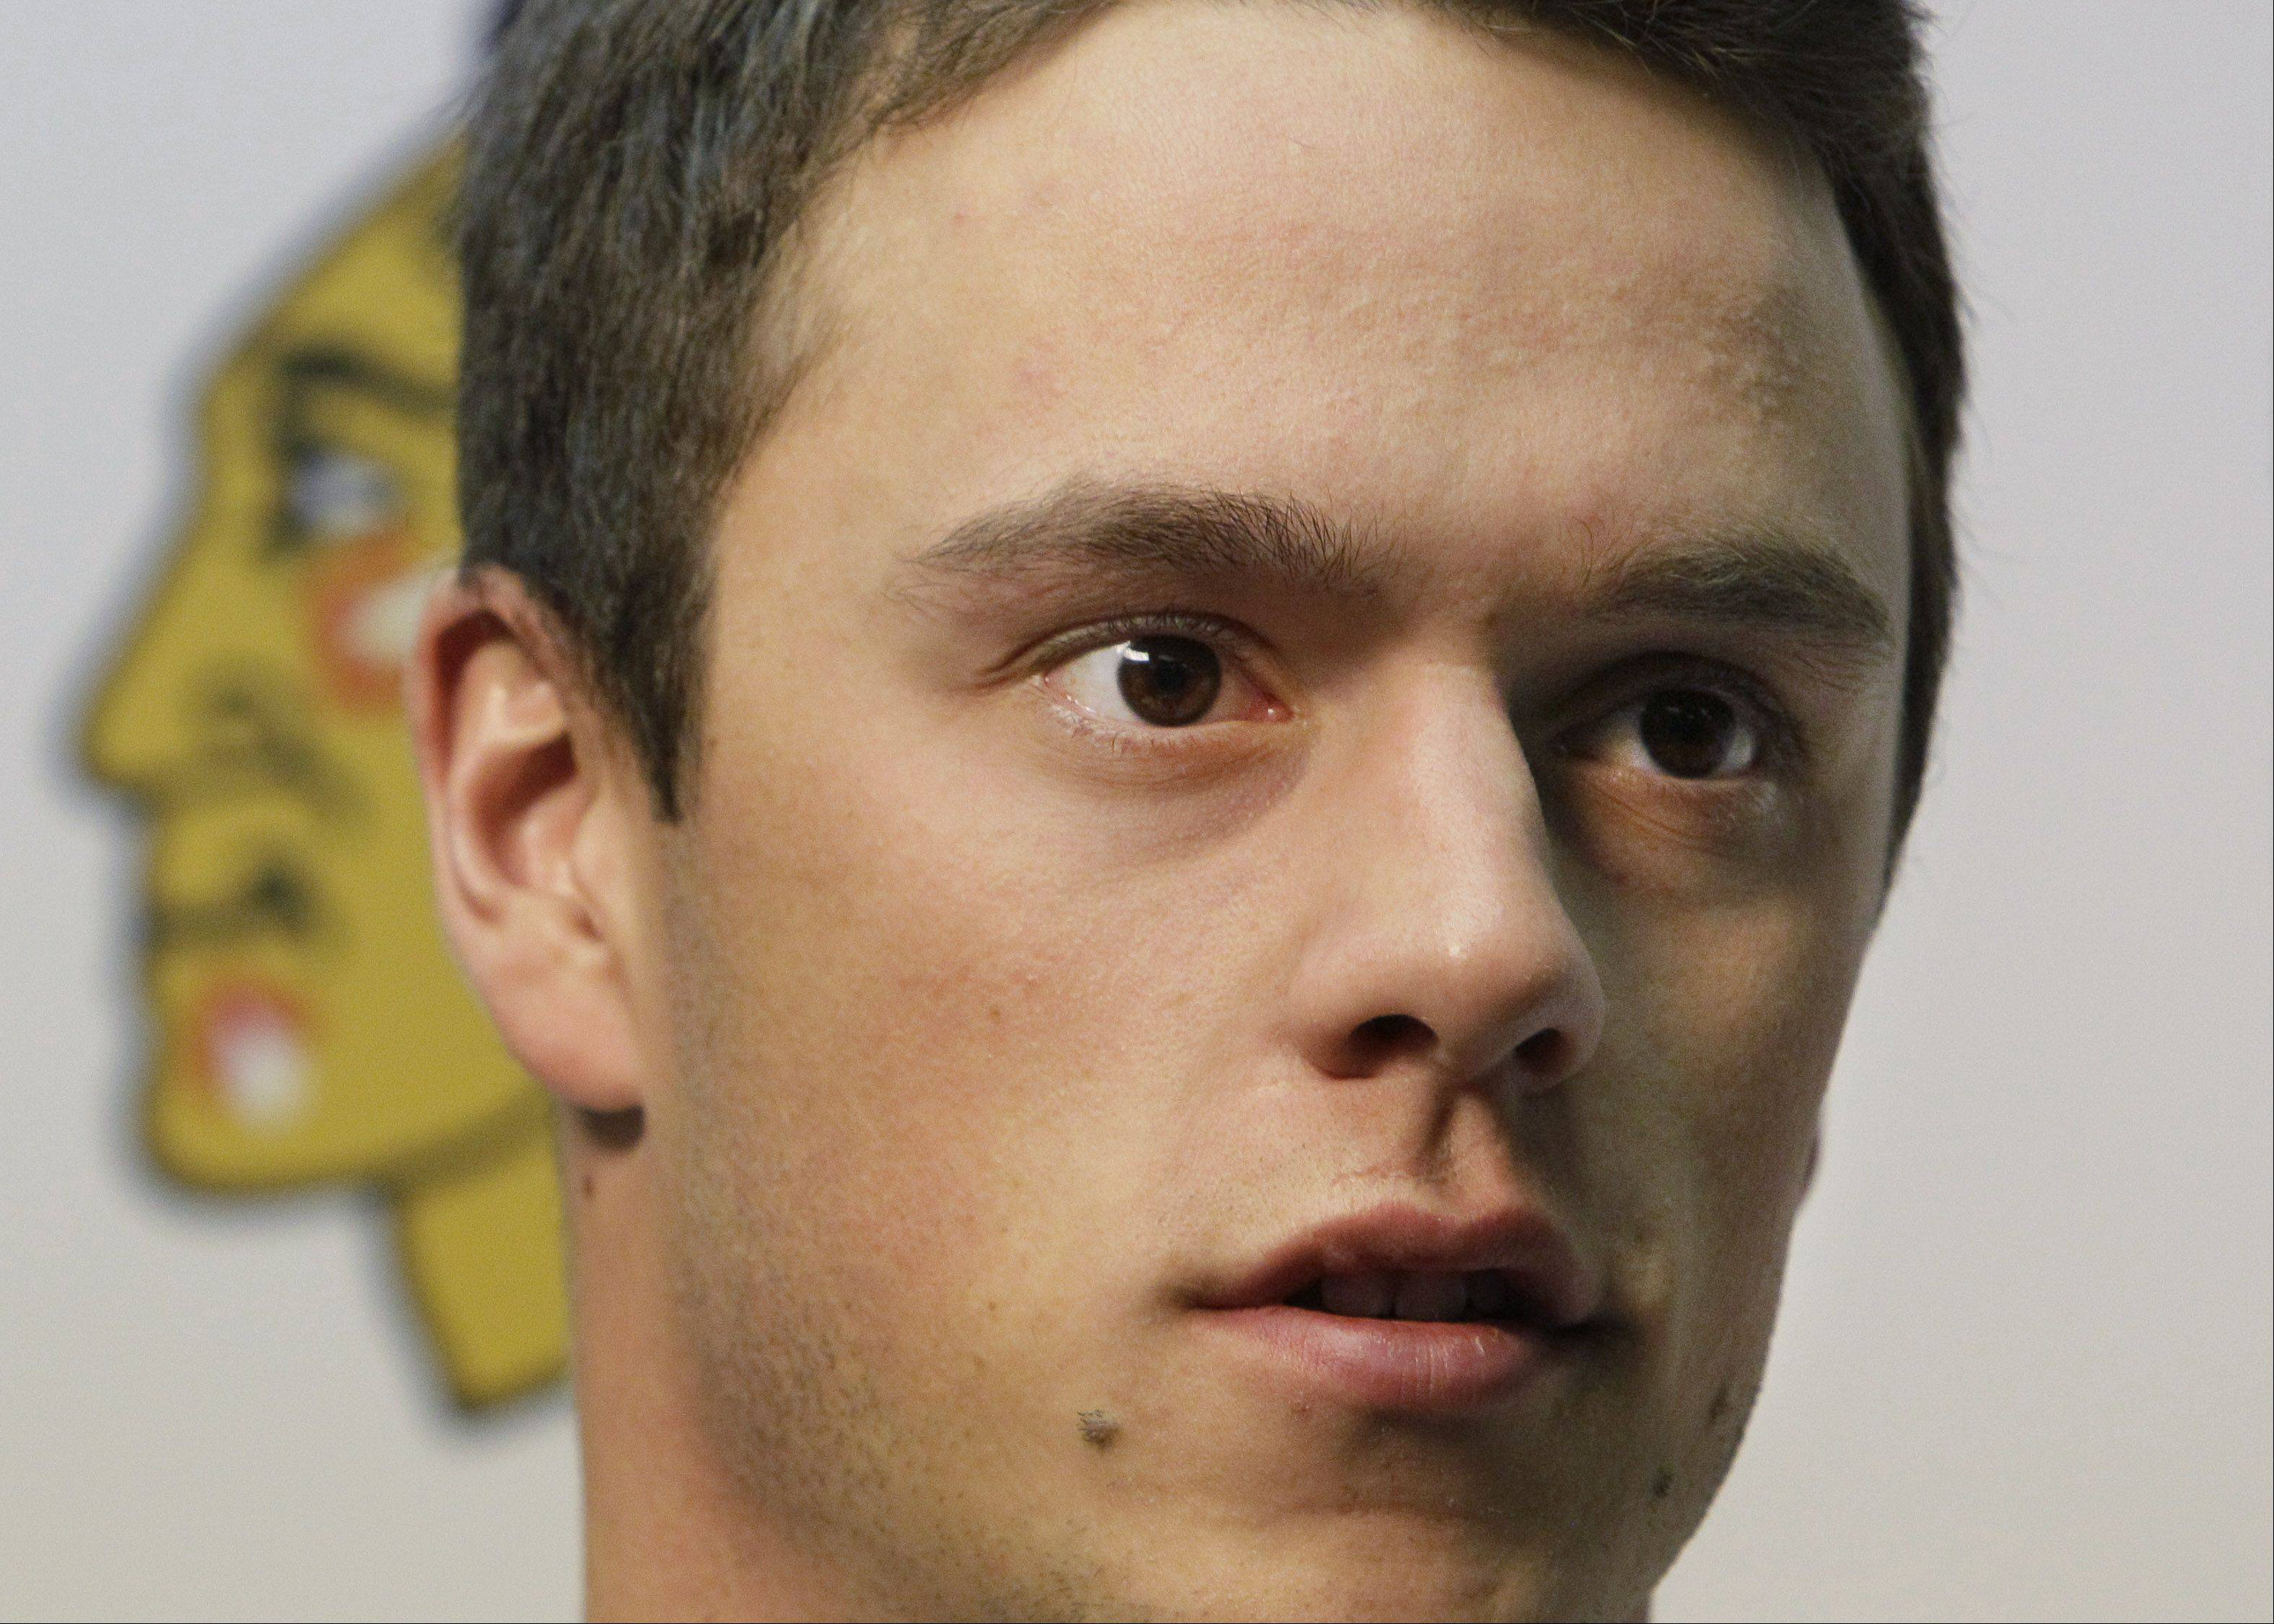 Blackhawks' Toews not hurt in one-car accident